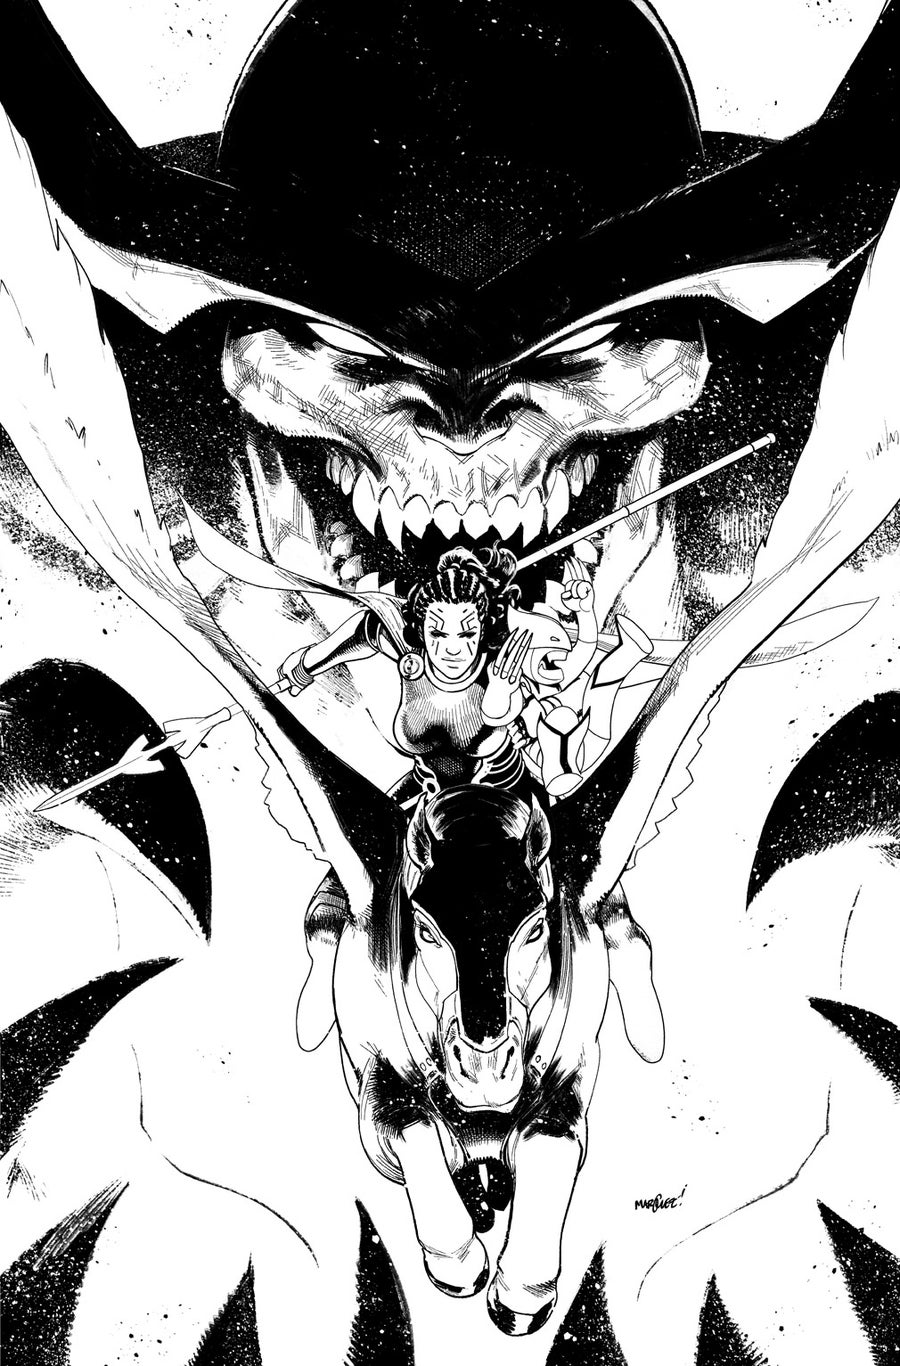 Image of EXILES #2 COVER ARTIST'S PROOF